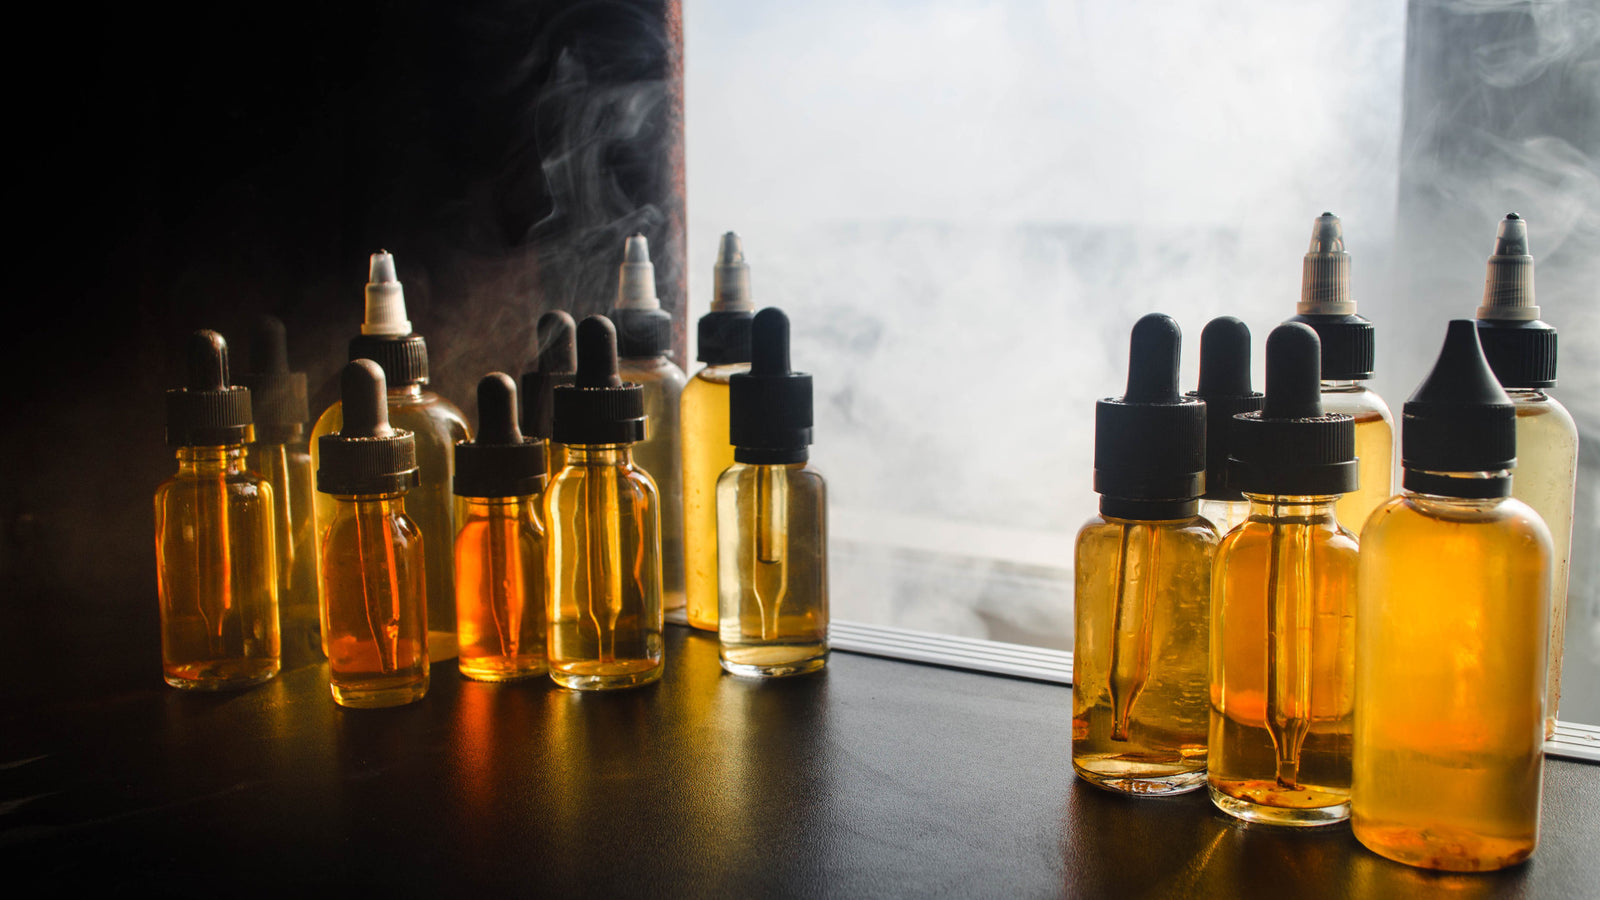 My local Vape Shop sells crazy expired e-juice and covers